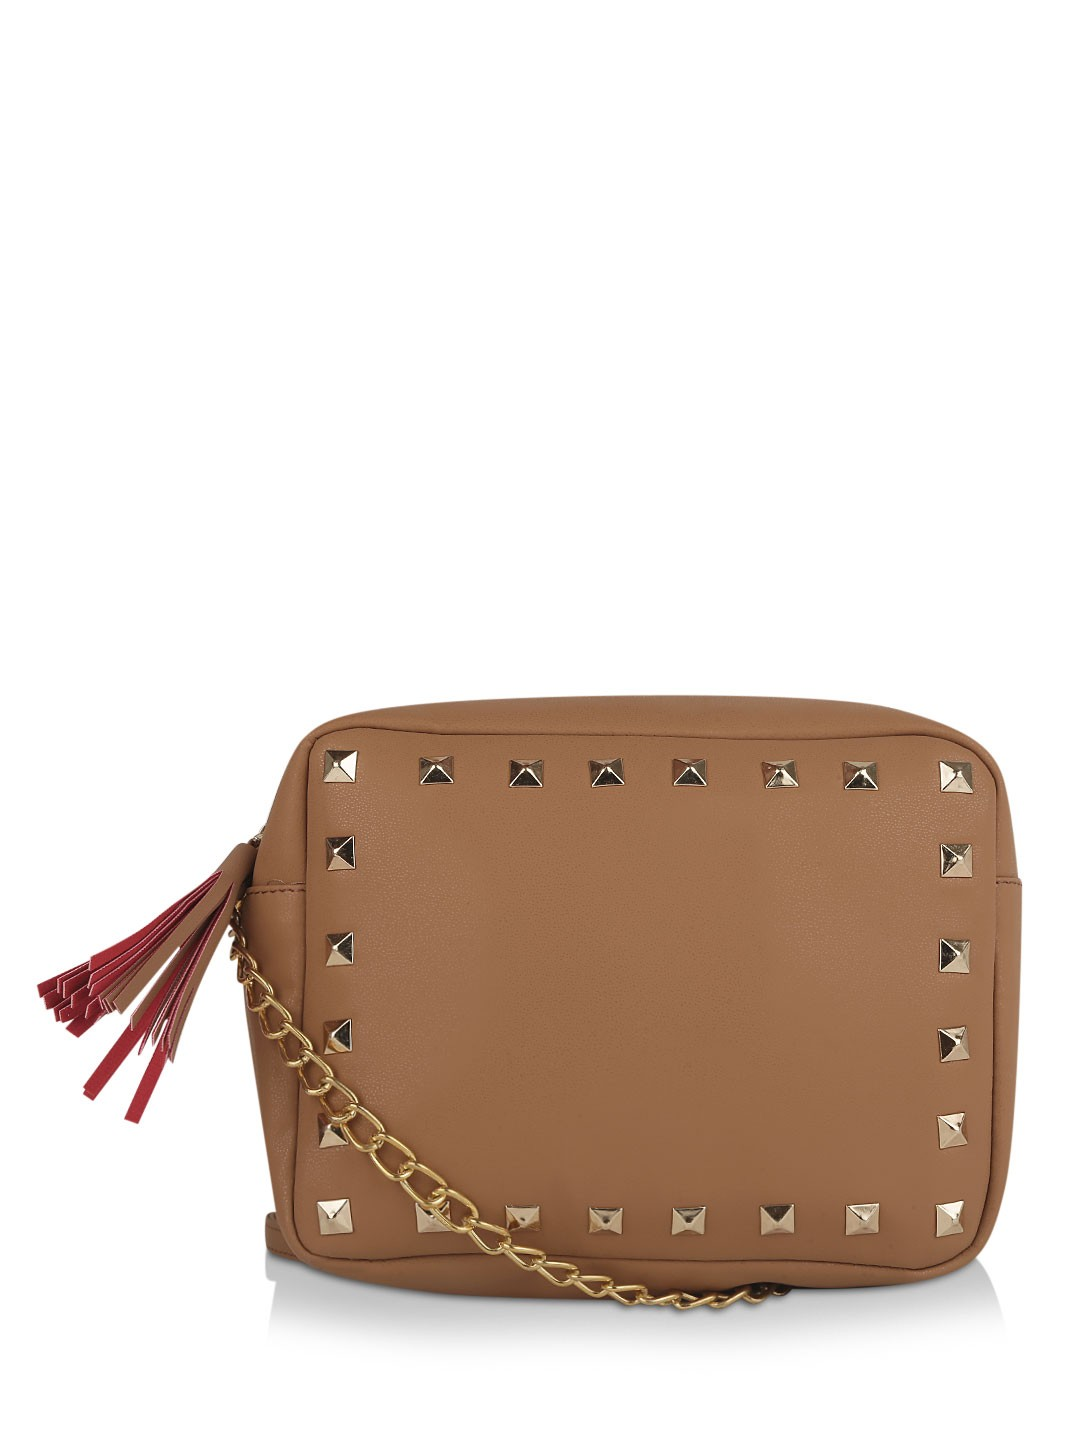 Buy PARIS BELLE Studded Sling Bag For Women - Women's Multi Sling ...